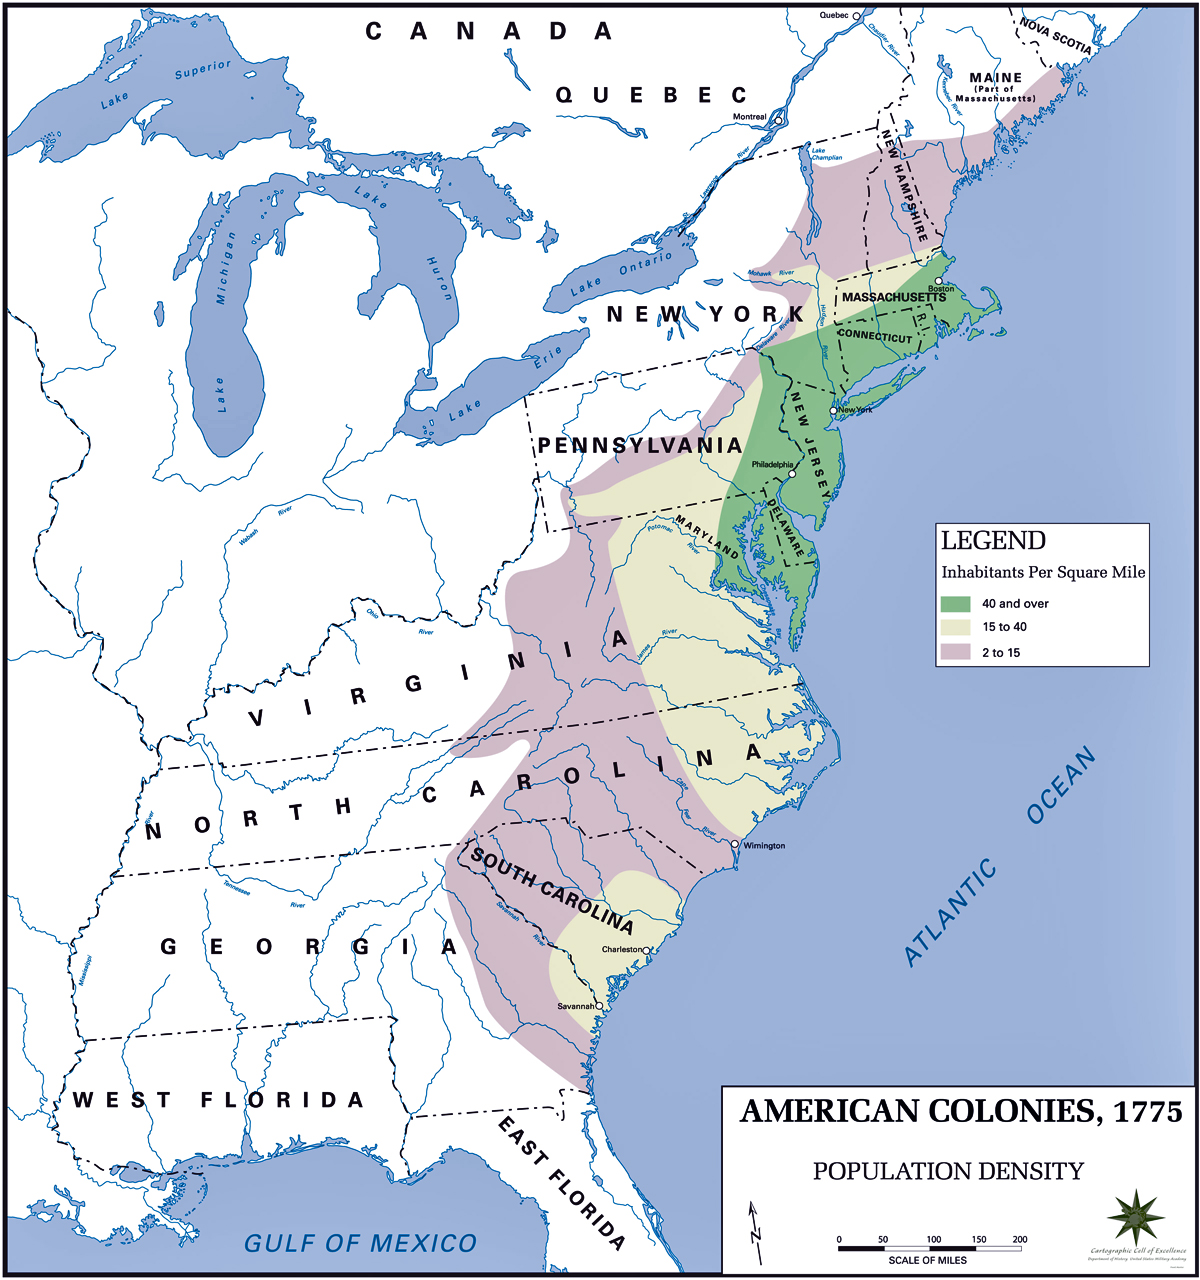 of the American Colonies Population Density 1775